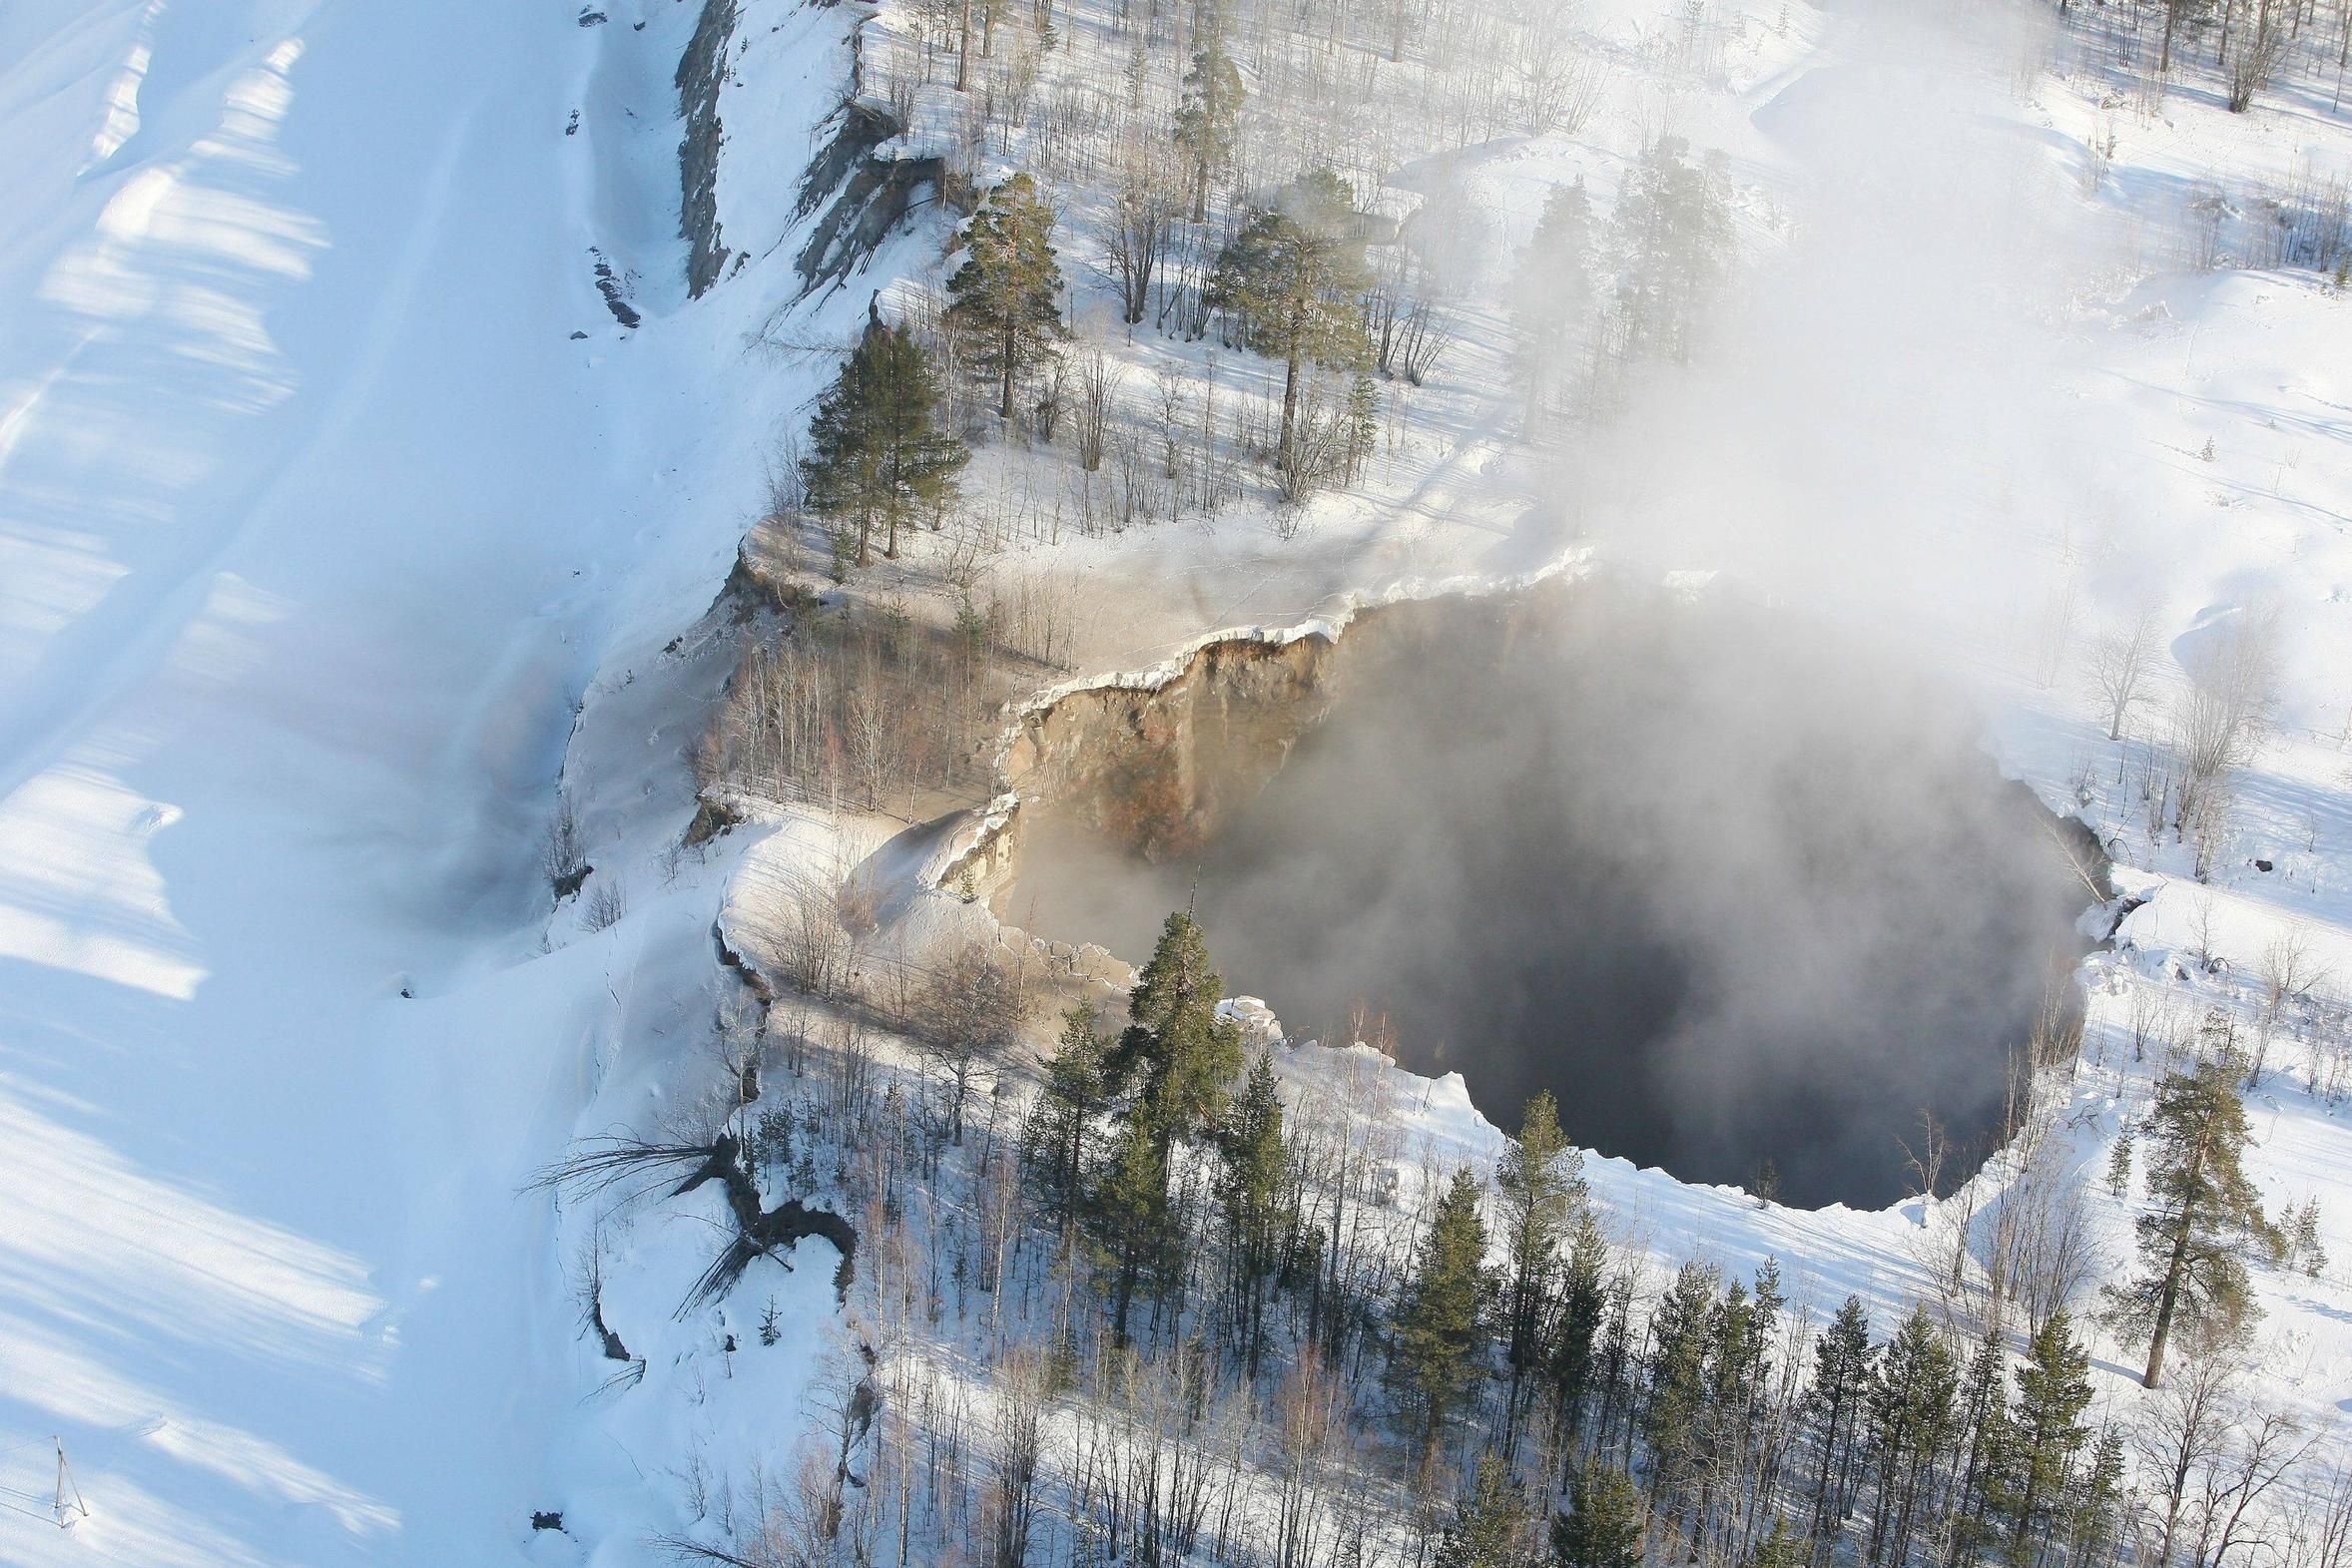 200 ft wide entrance to hell opens up in Sweden.   Glad I wasn't there!